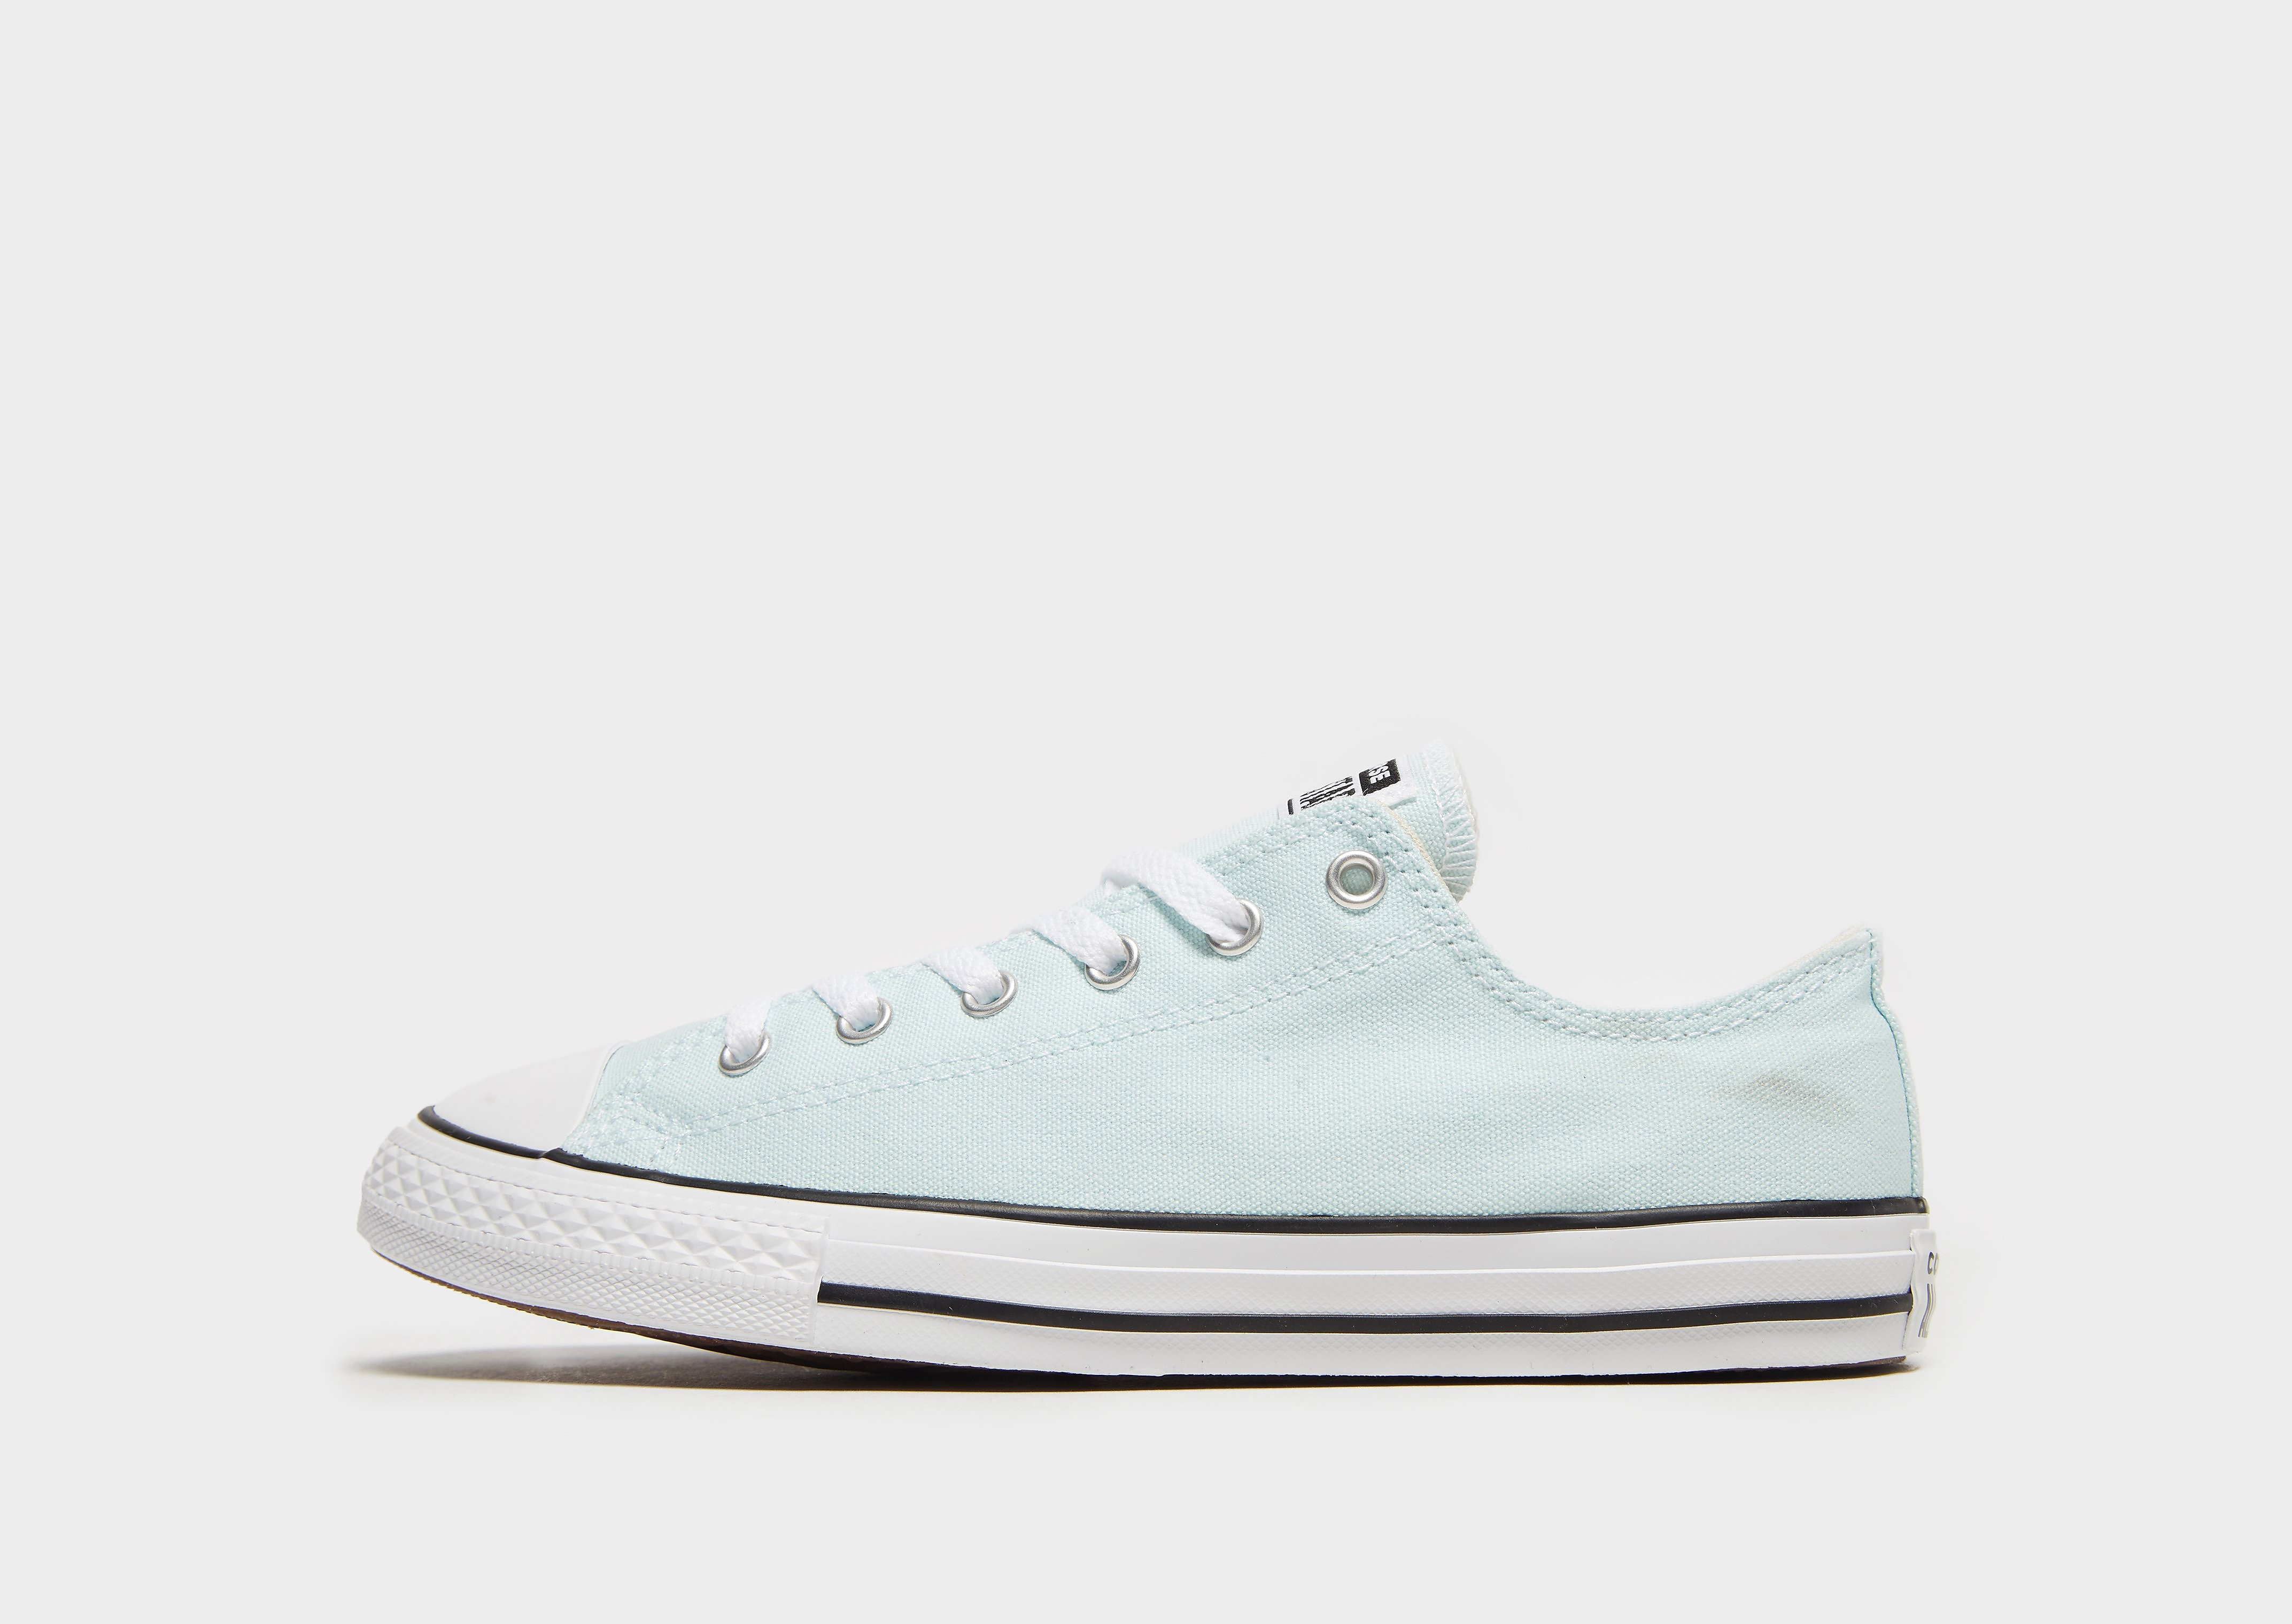 c1201fad7b5 Converse All Star kindersneaker blauw